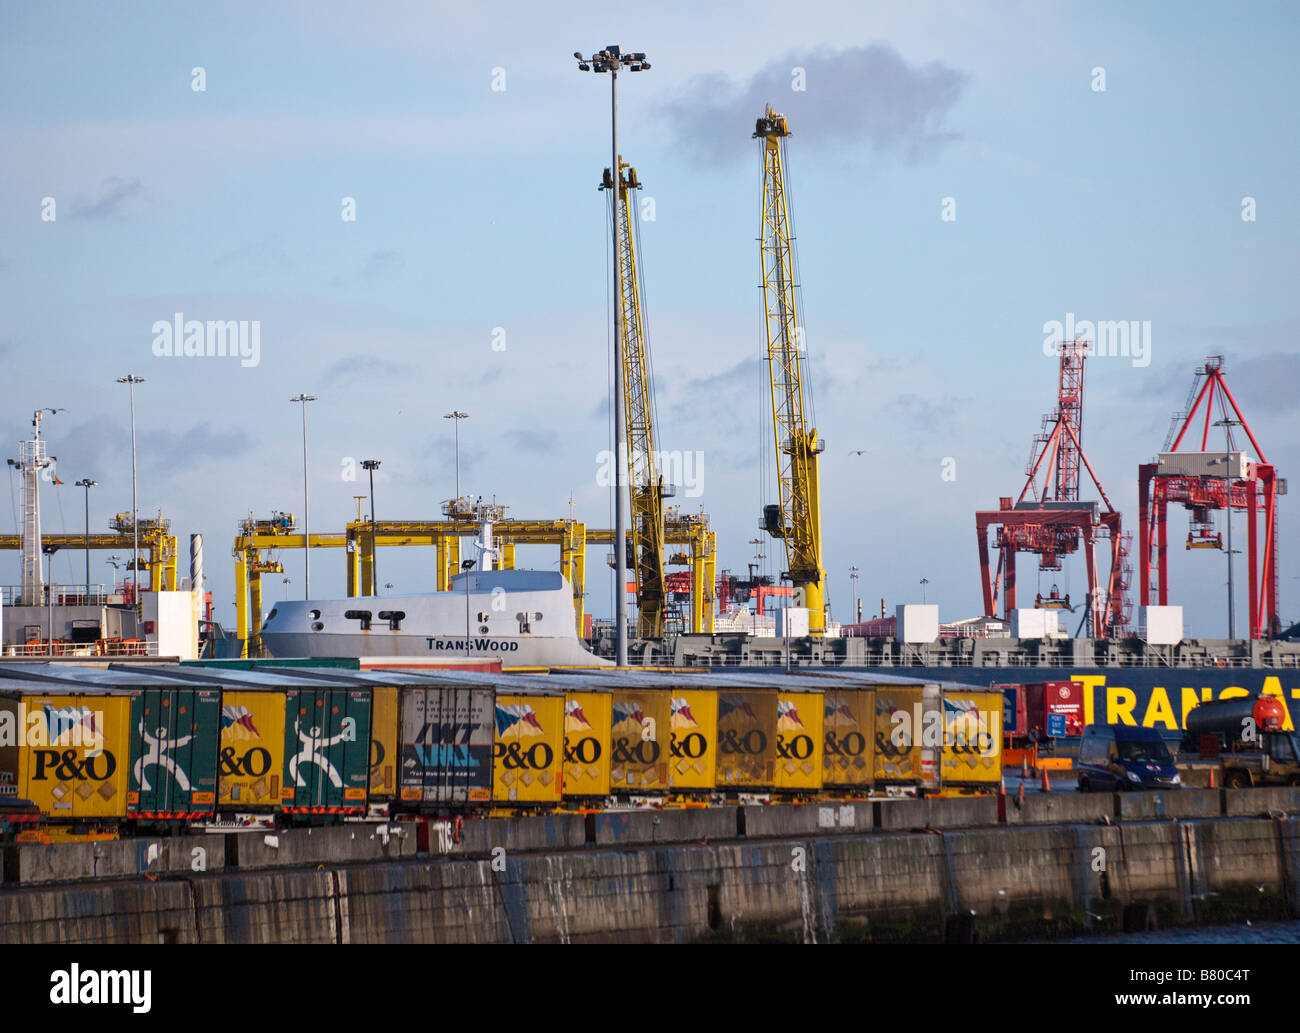 containers and container ship at dock in Dublin harbor, Ireland - Stock Image